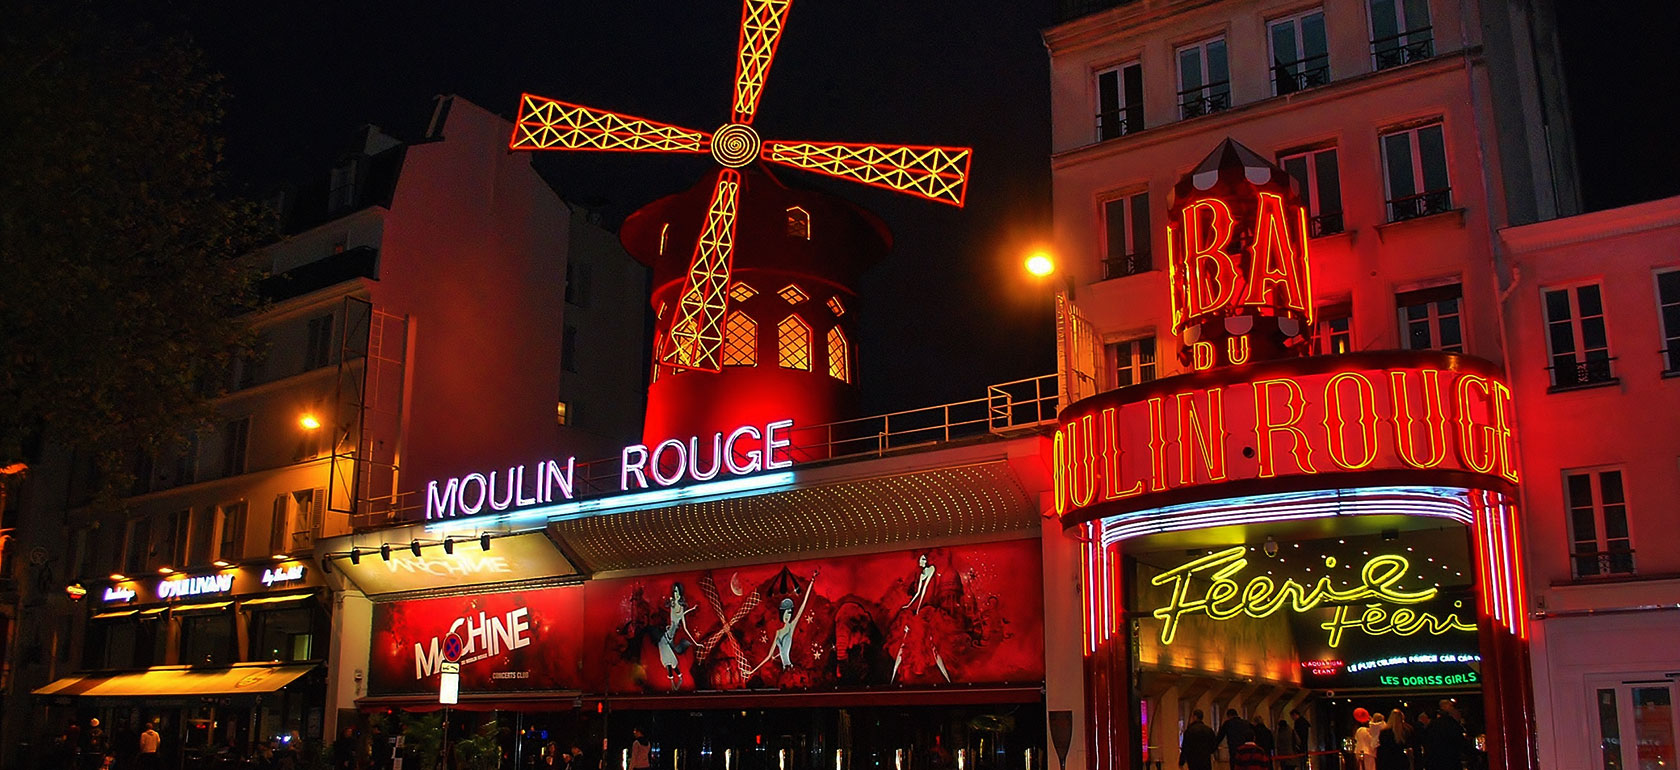 The Moulin Rouge is very popular, and Fridays and Saturdays often sell out months thritingetfc7.cf 2M Tickets Sold · No Hidden Fees · E-Ticket To Your Inbox · 25 Years ExperienceEvents: Attractions, Cabaret, Classical, Formula 1 Races, Musicals, Opera and more.